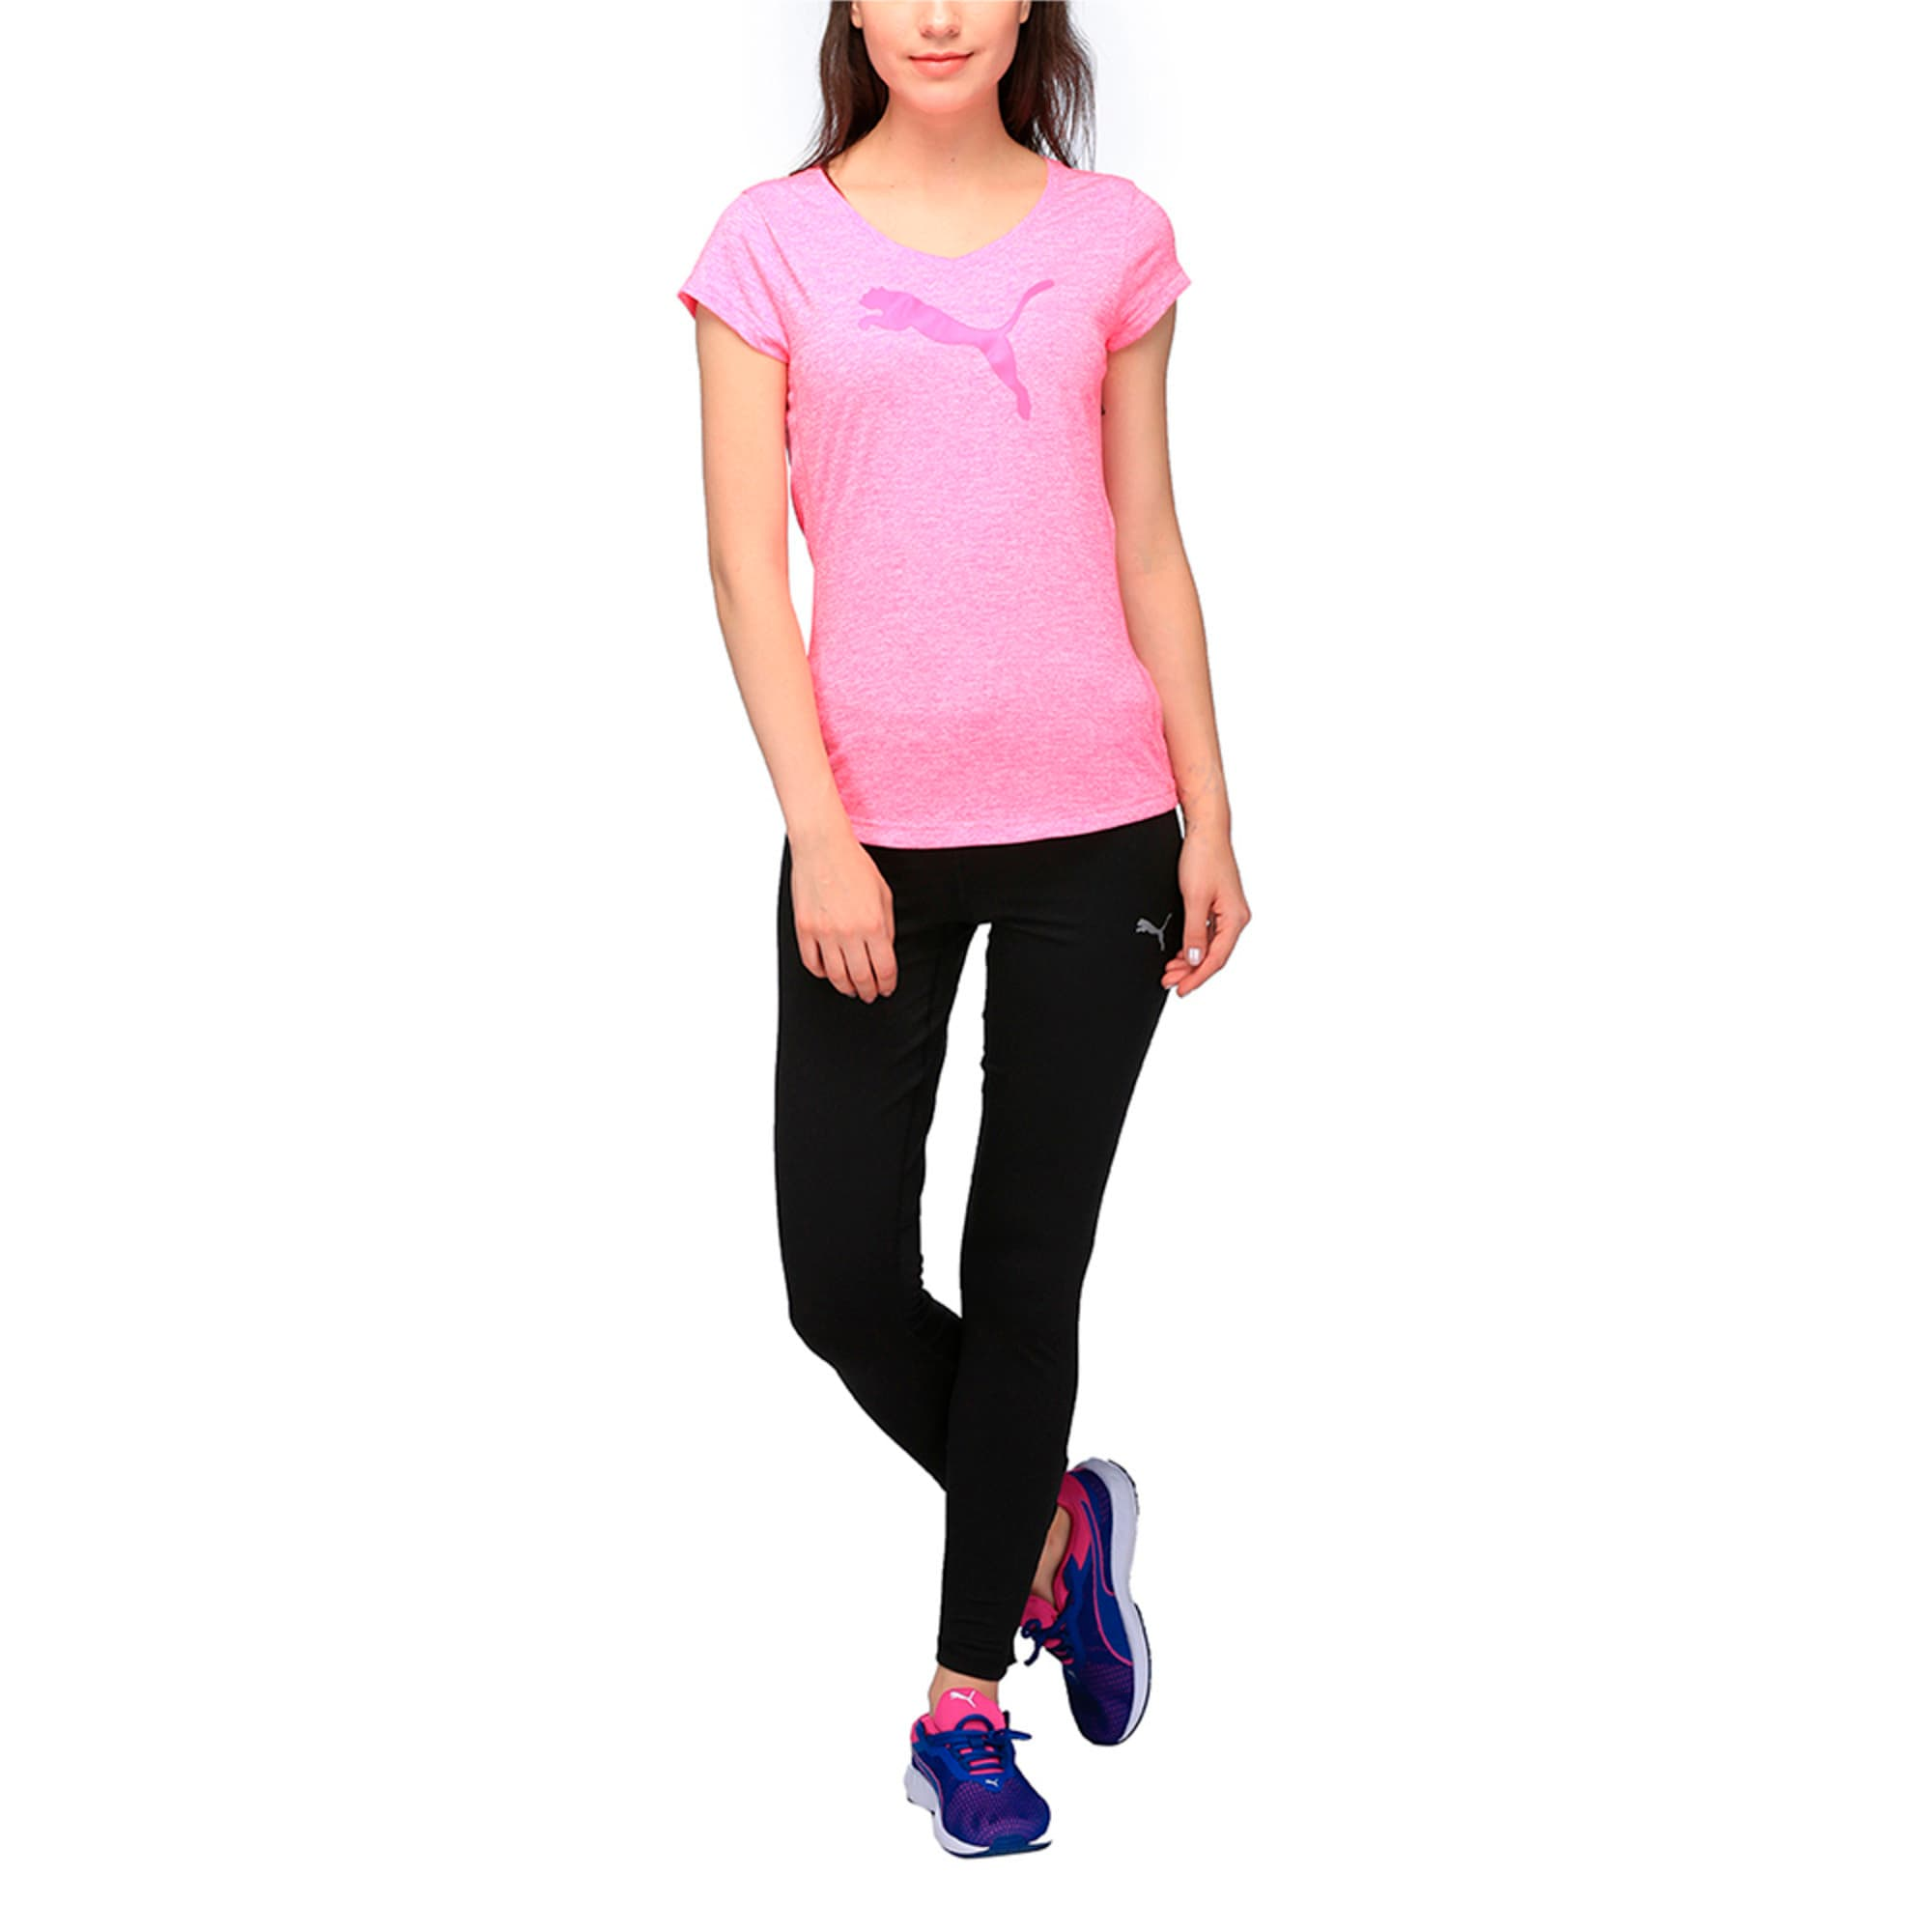 Thumbnail 3 of Active Training Women's Heather Cat T-Shirt, KNOCKOUT PINK Heather, medium-IND